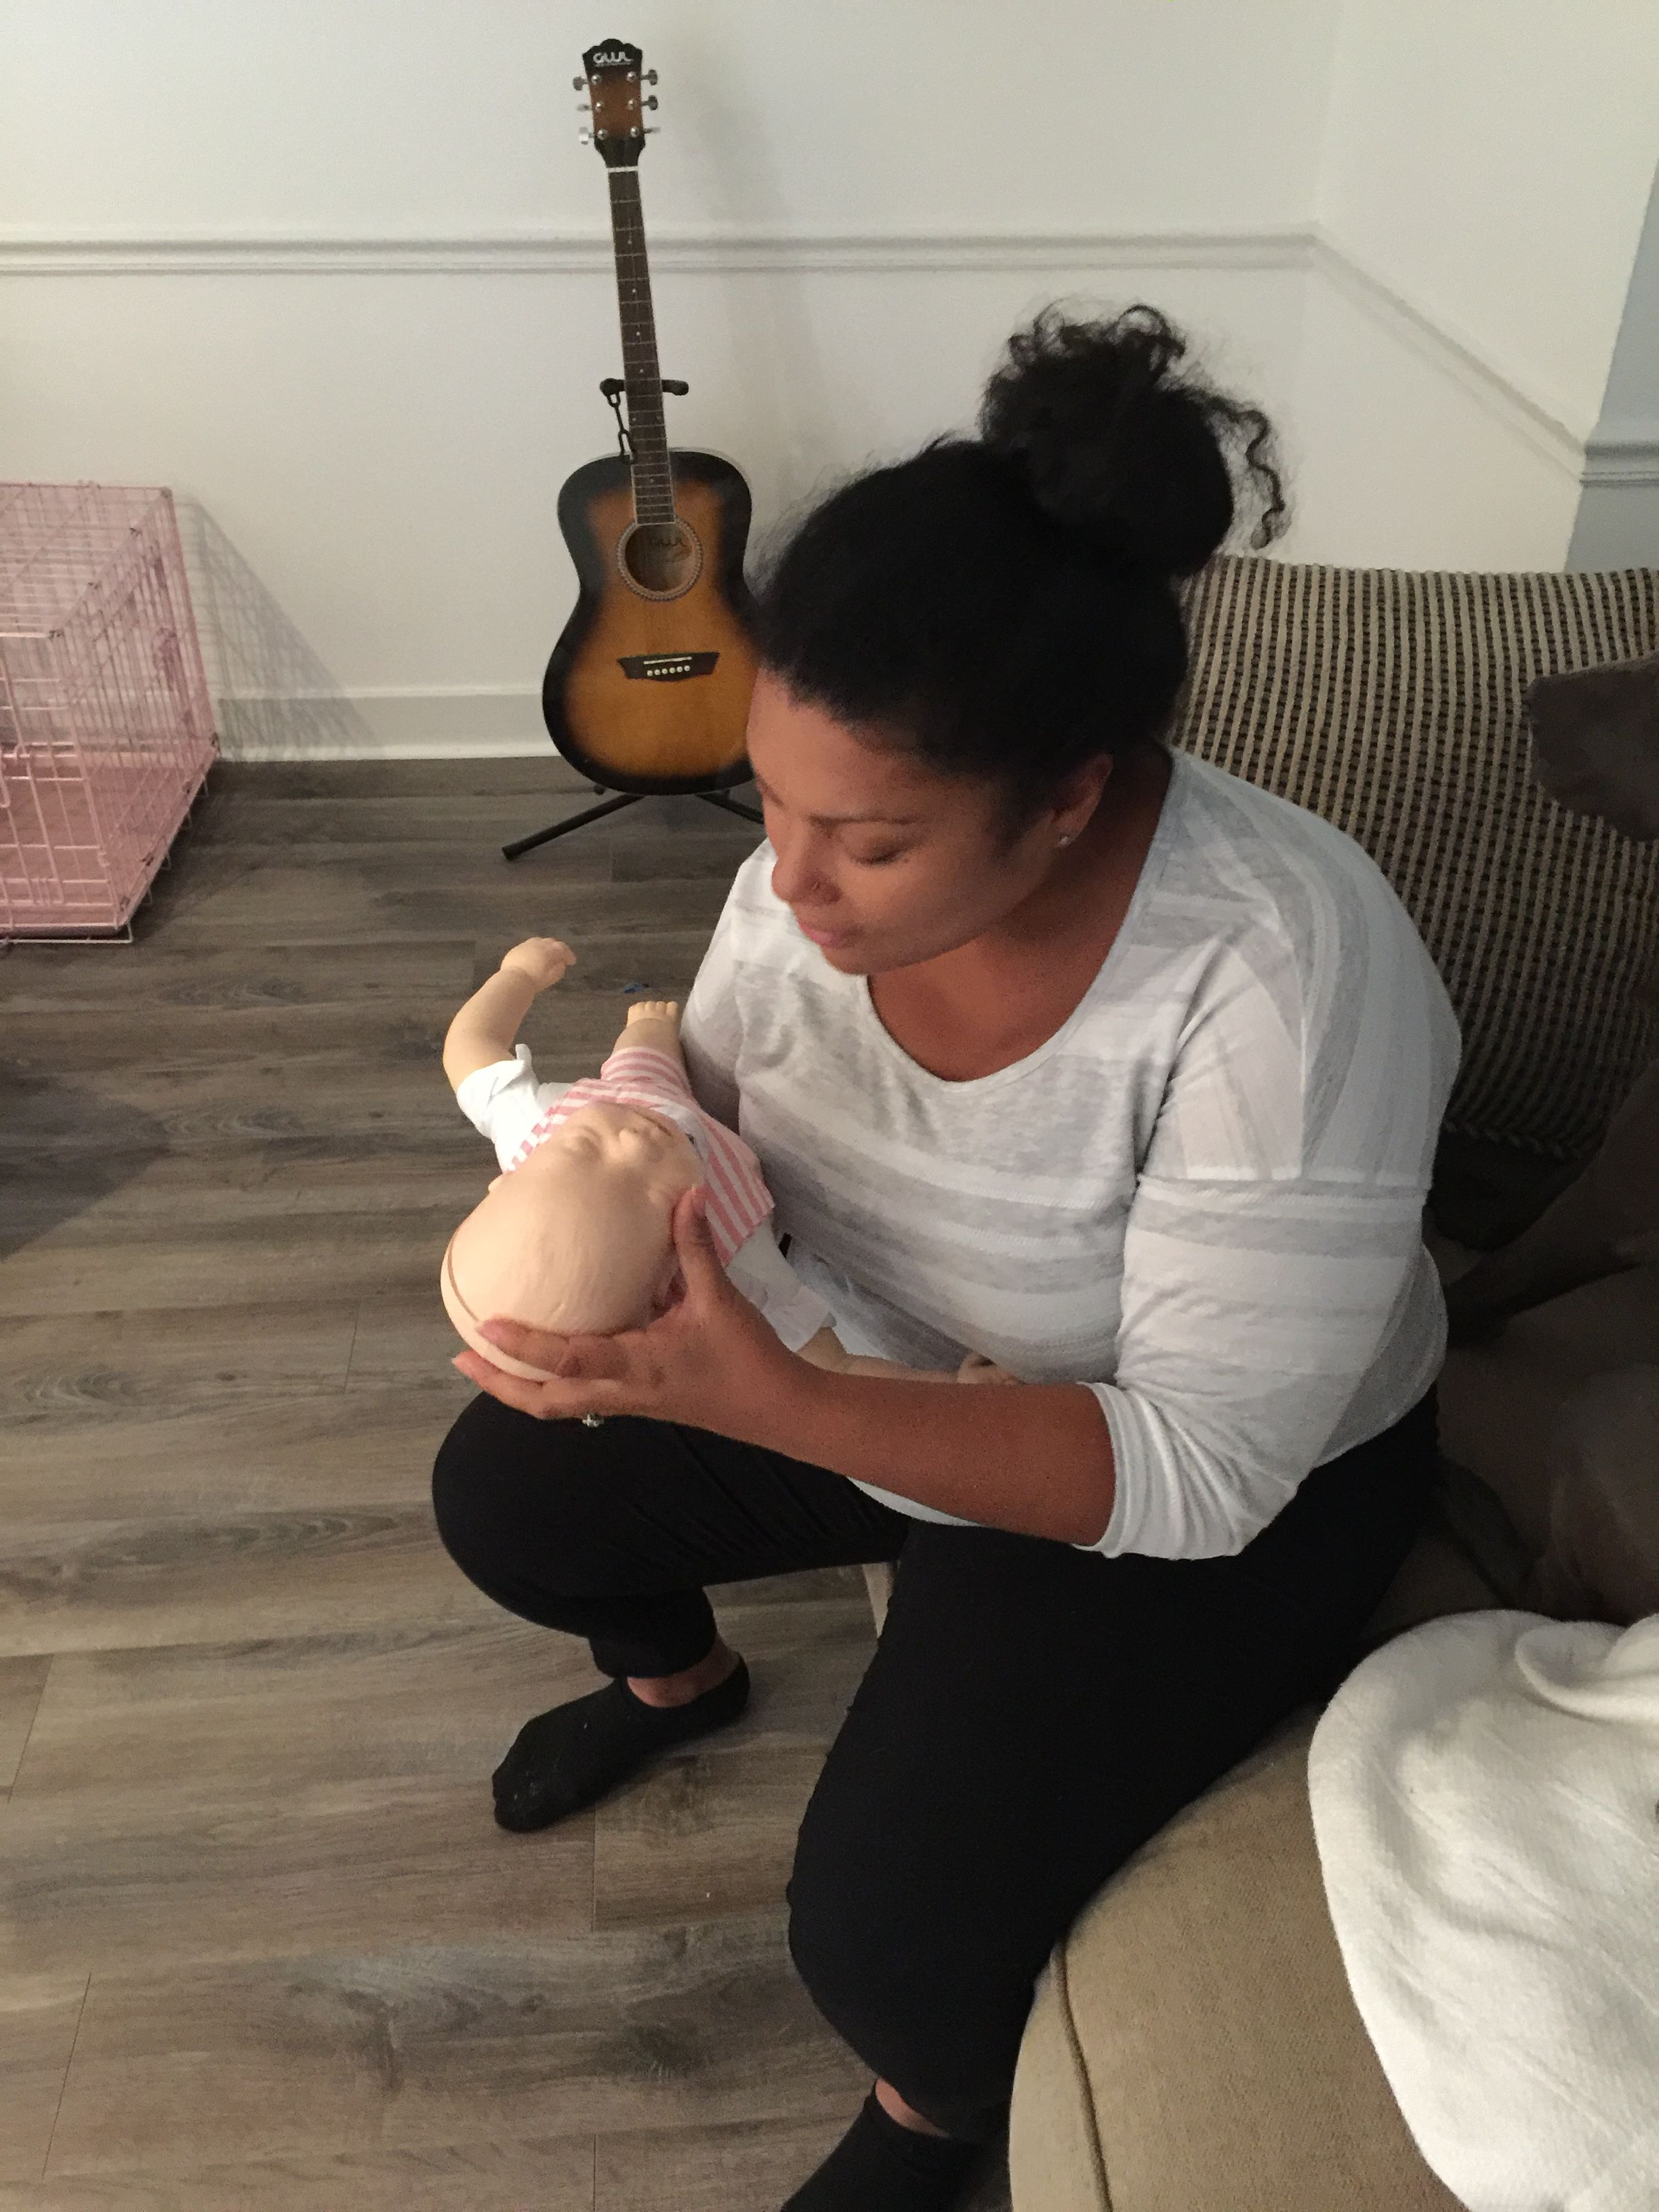 Great infant cpr class with ella and travis of ella rose cleaning great infant cpr class with ella and travis of ella rose cleaning services raleigh nc congrats to you both on your new bundle of joy 1betcityfo Images